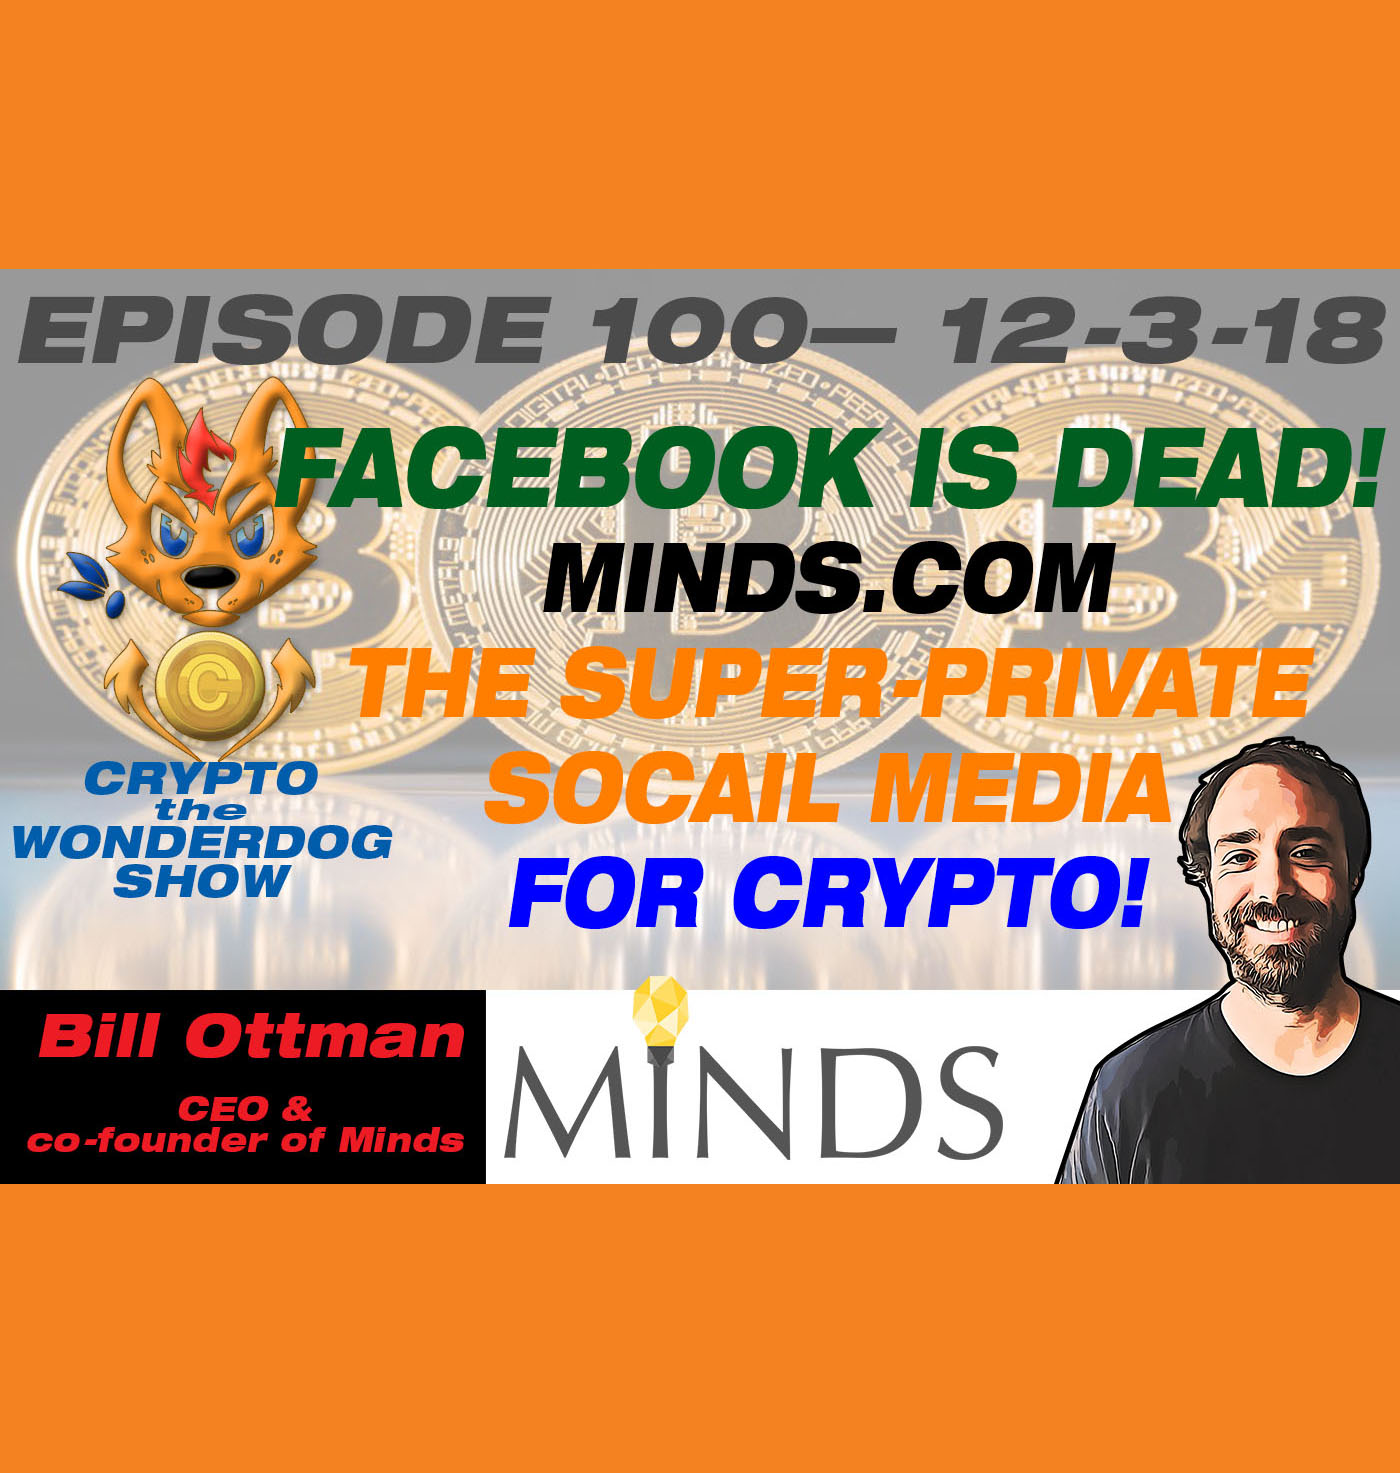 FACEBOOK is DEAD!  And MINDS.COM has taken over! E100 - (Bill Ottman) and [MINDS.COM]